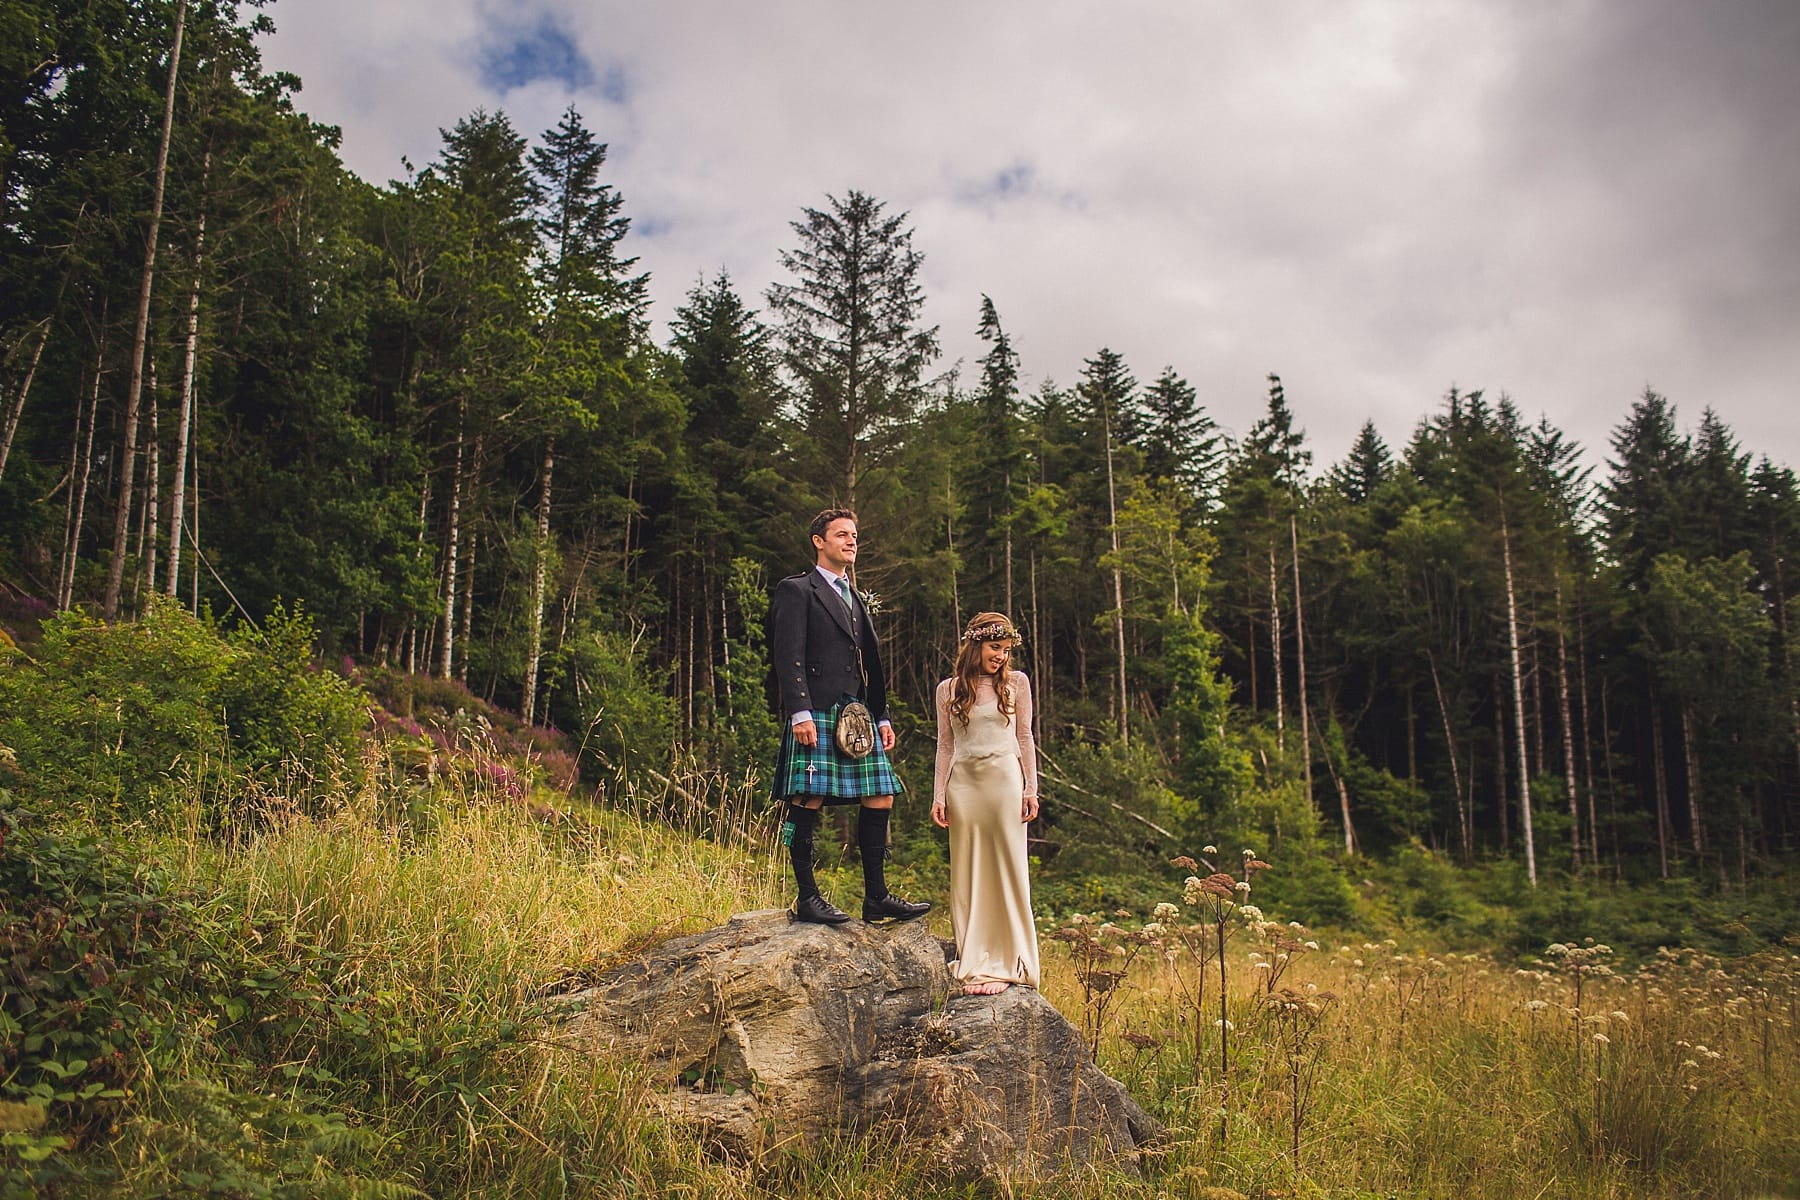 northern irish wedding photographer,adventurous wedding,wedding inspiration,floral hair crown,